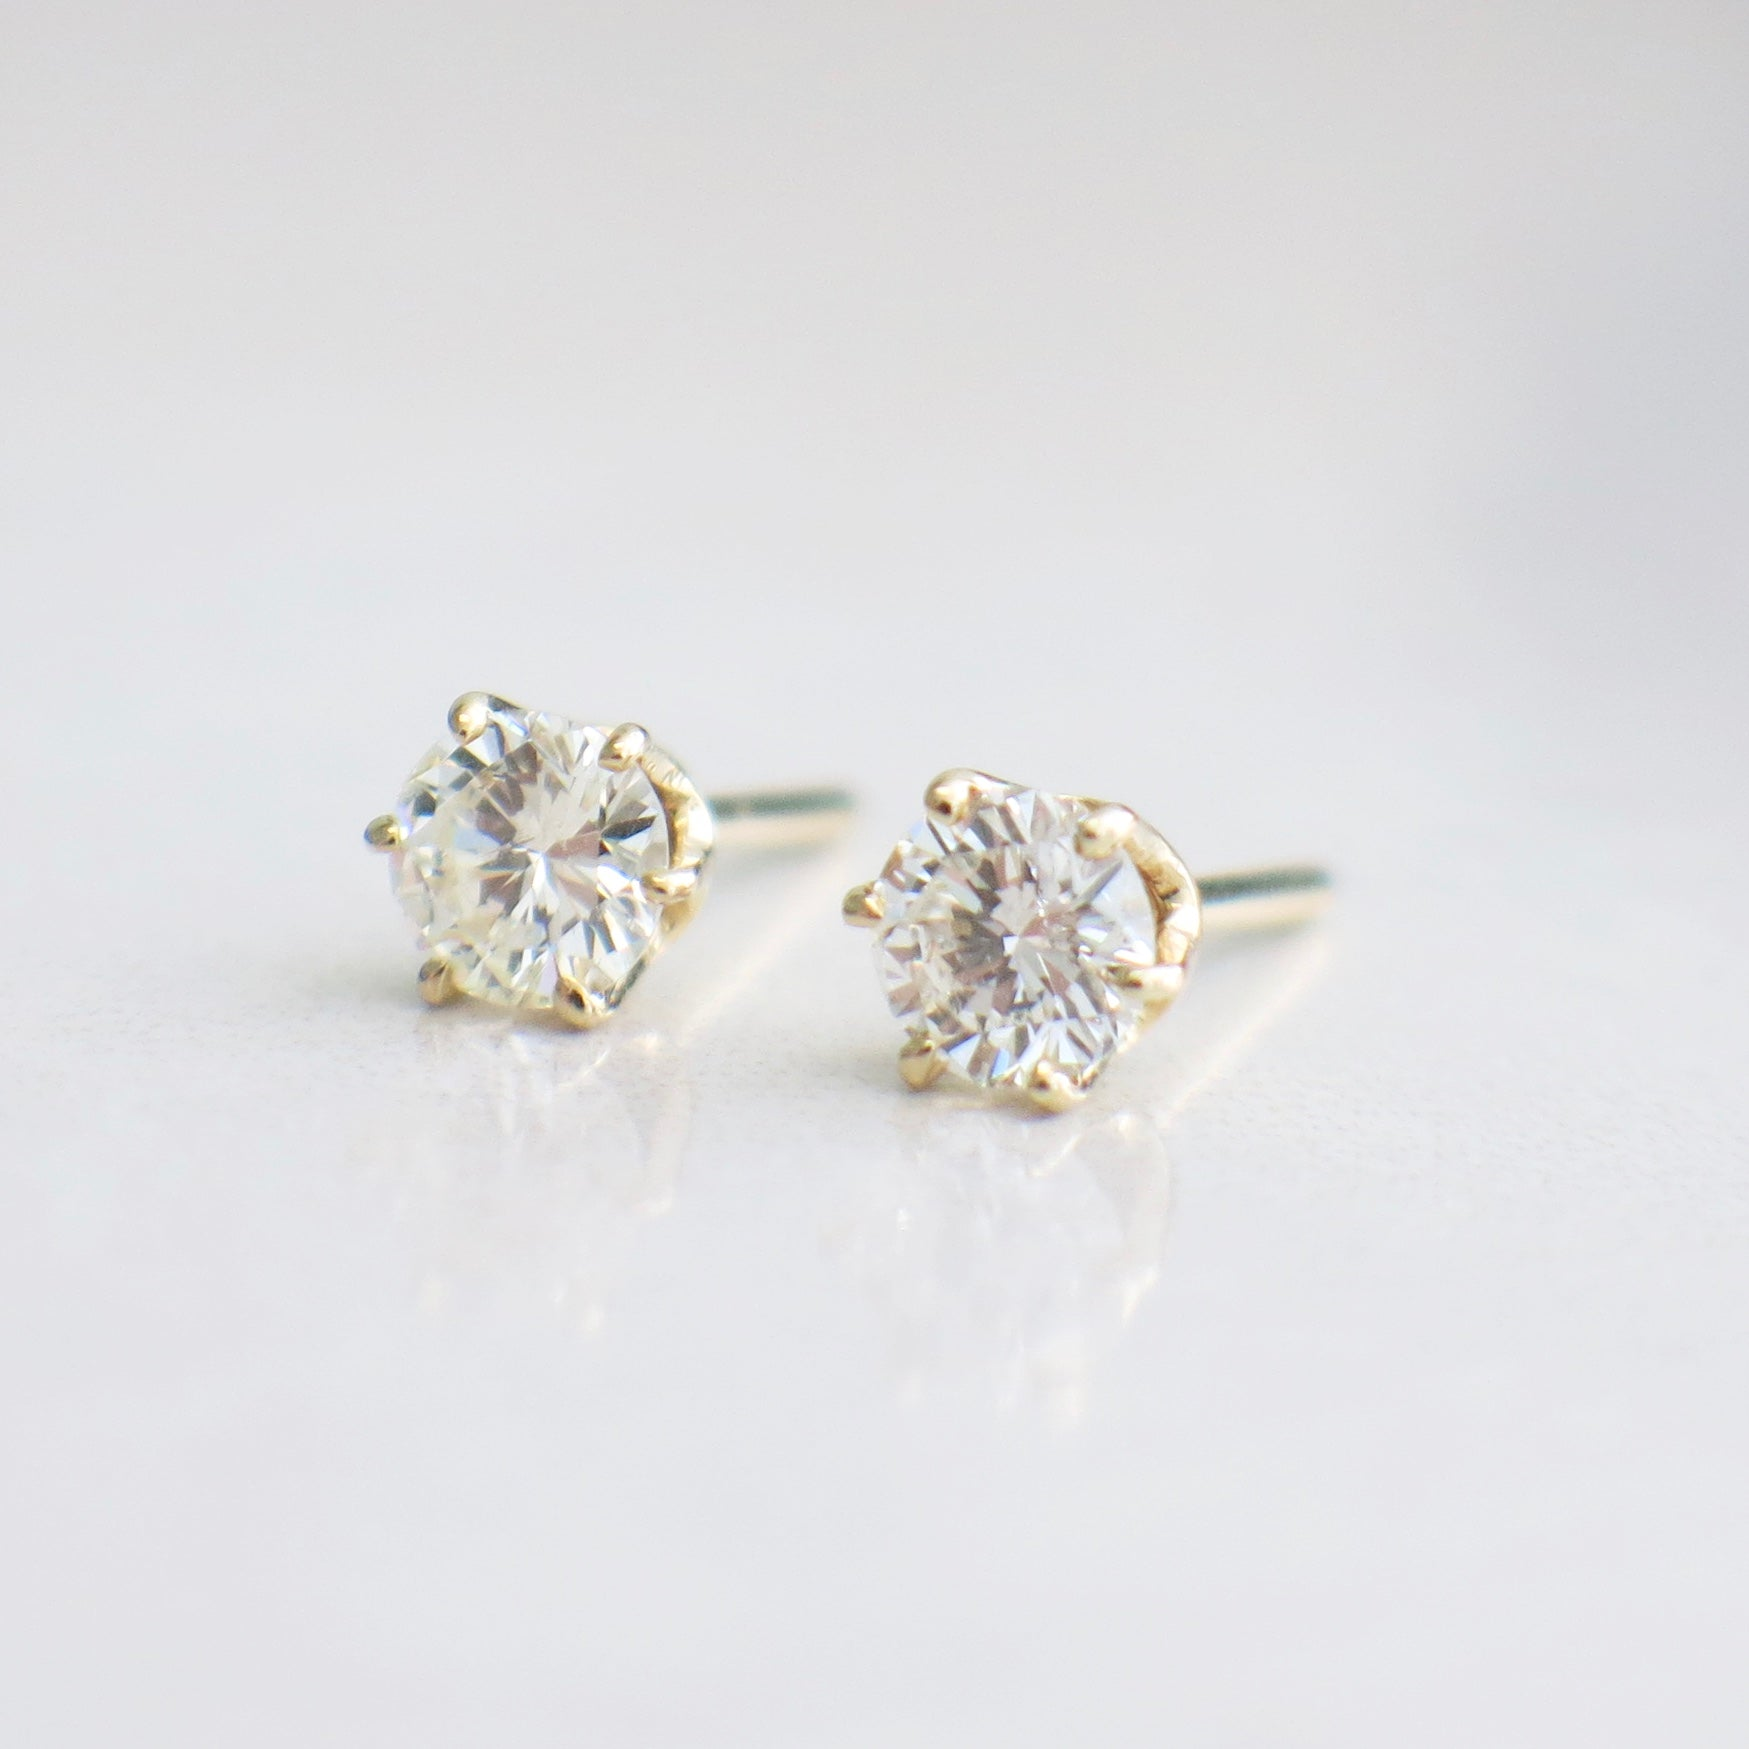 da9ca4268ce1f 80 CTW Diamond Studs 14K Yellow Gold Earrings